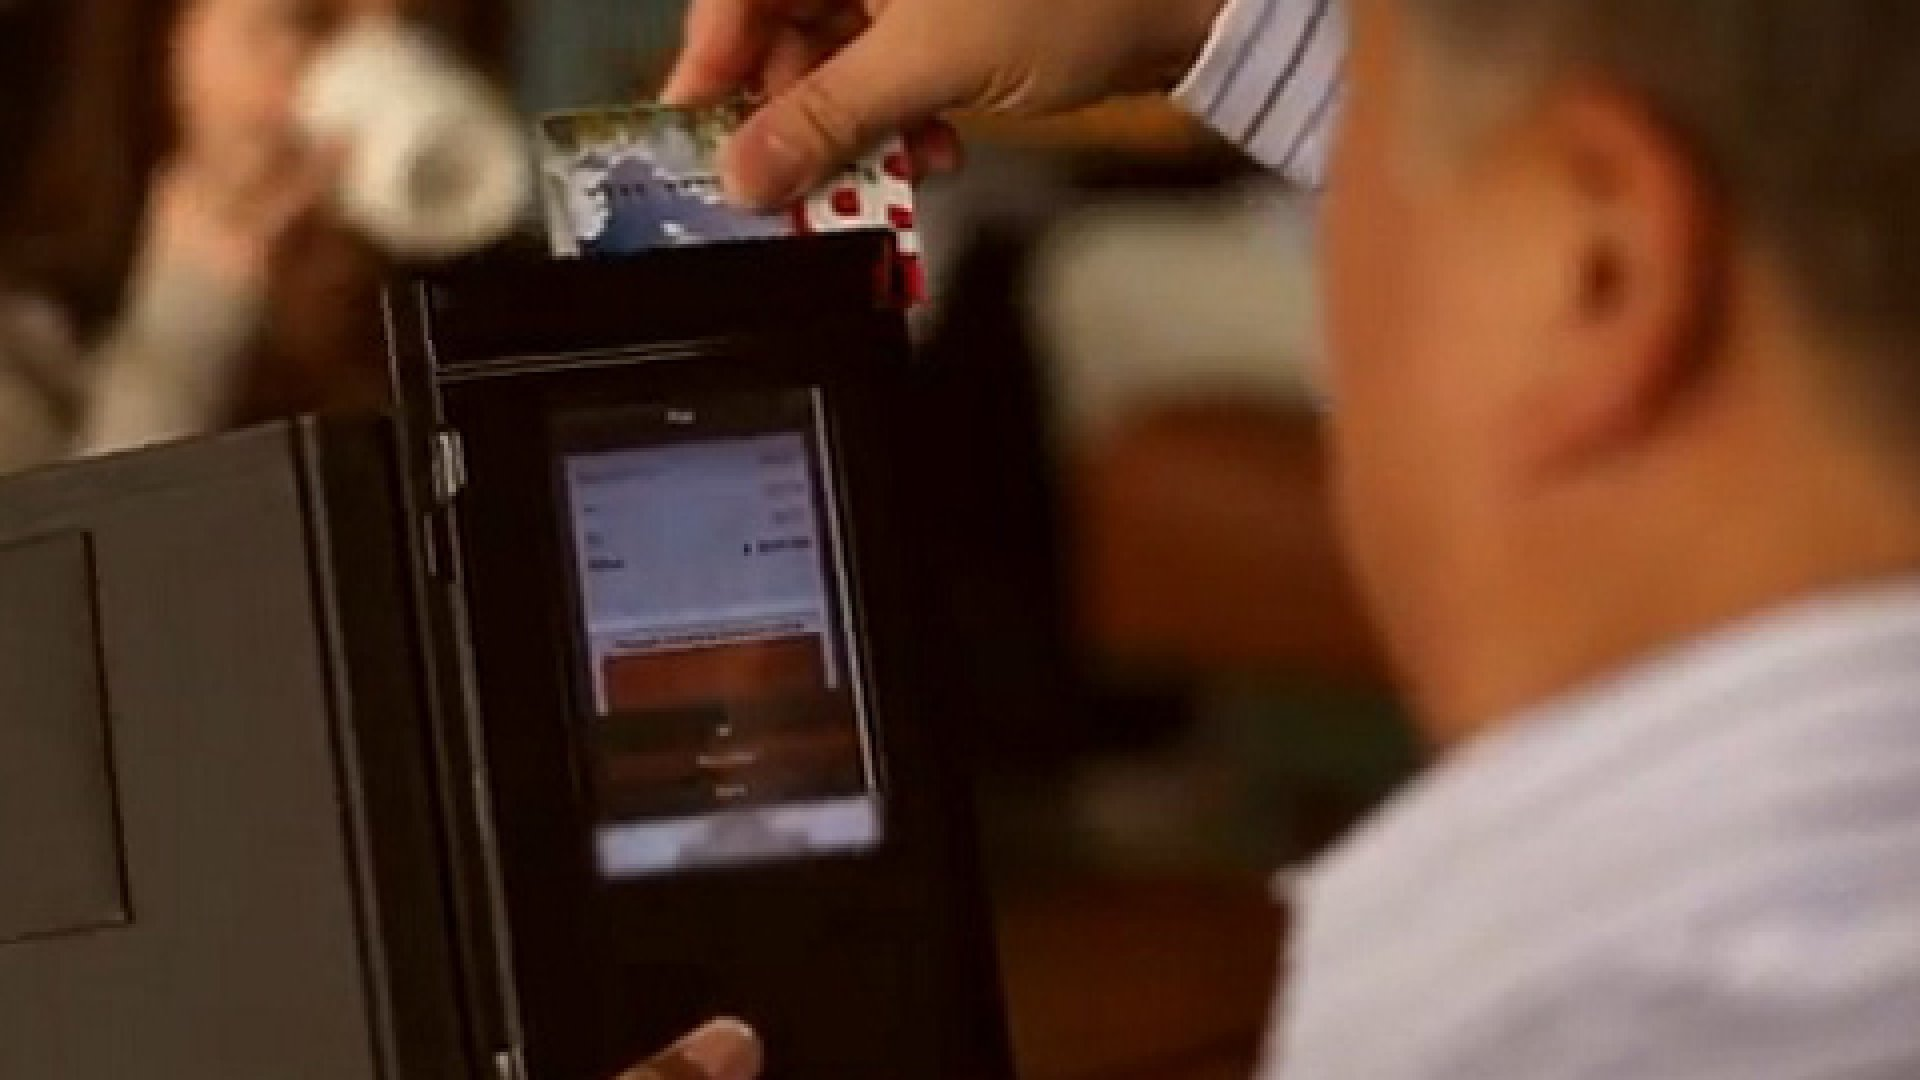 Viableware set out to reinvent the process of paying at restaurants by developing its own tablet and software.